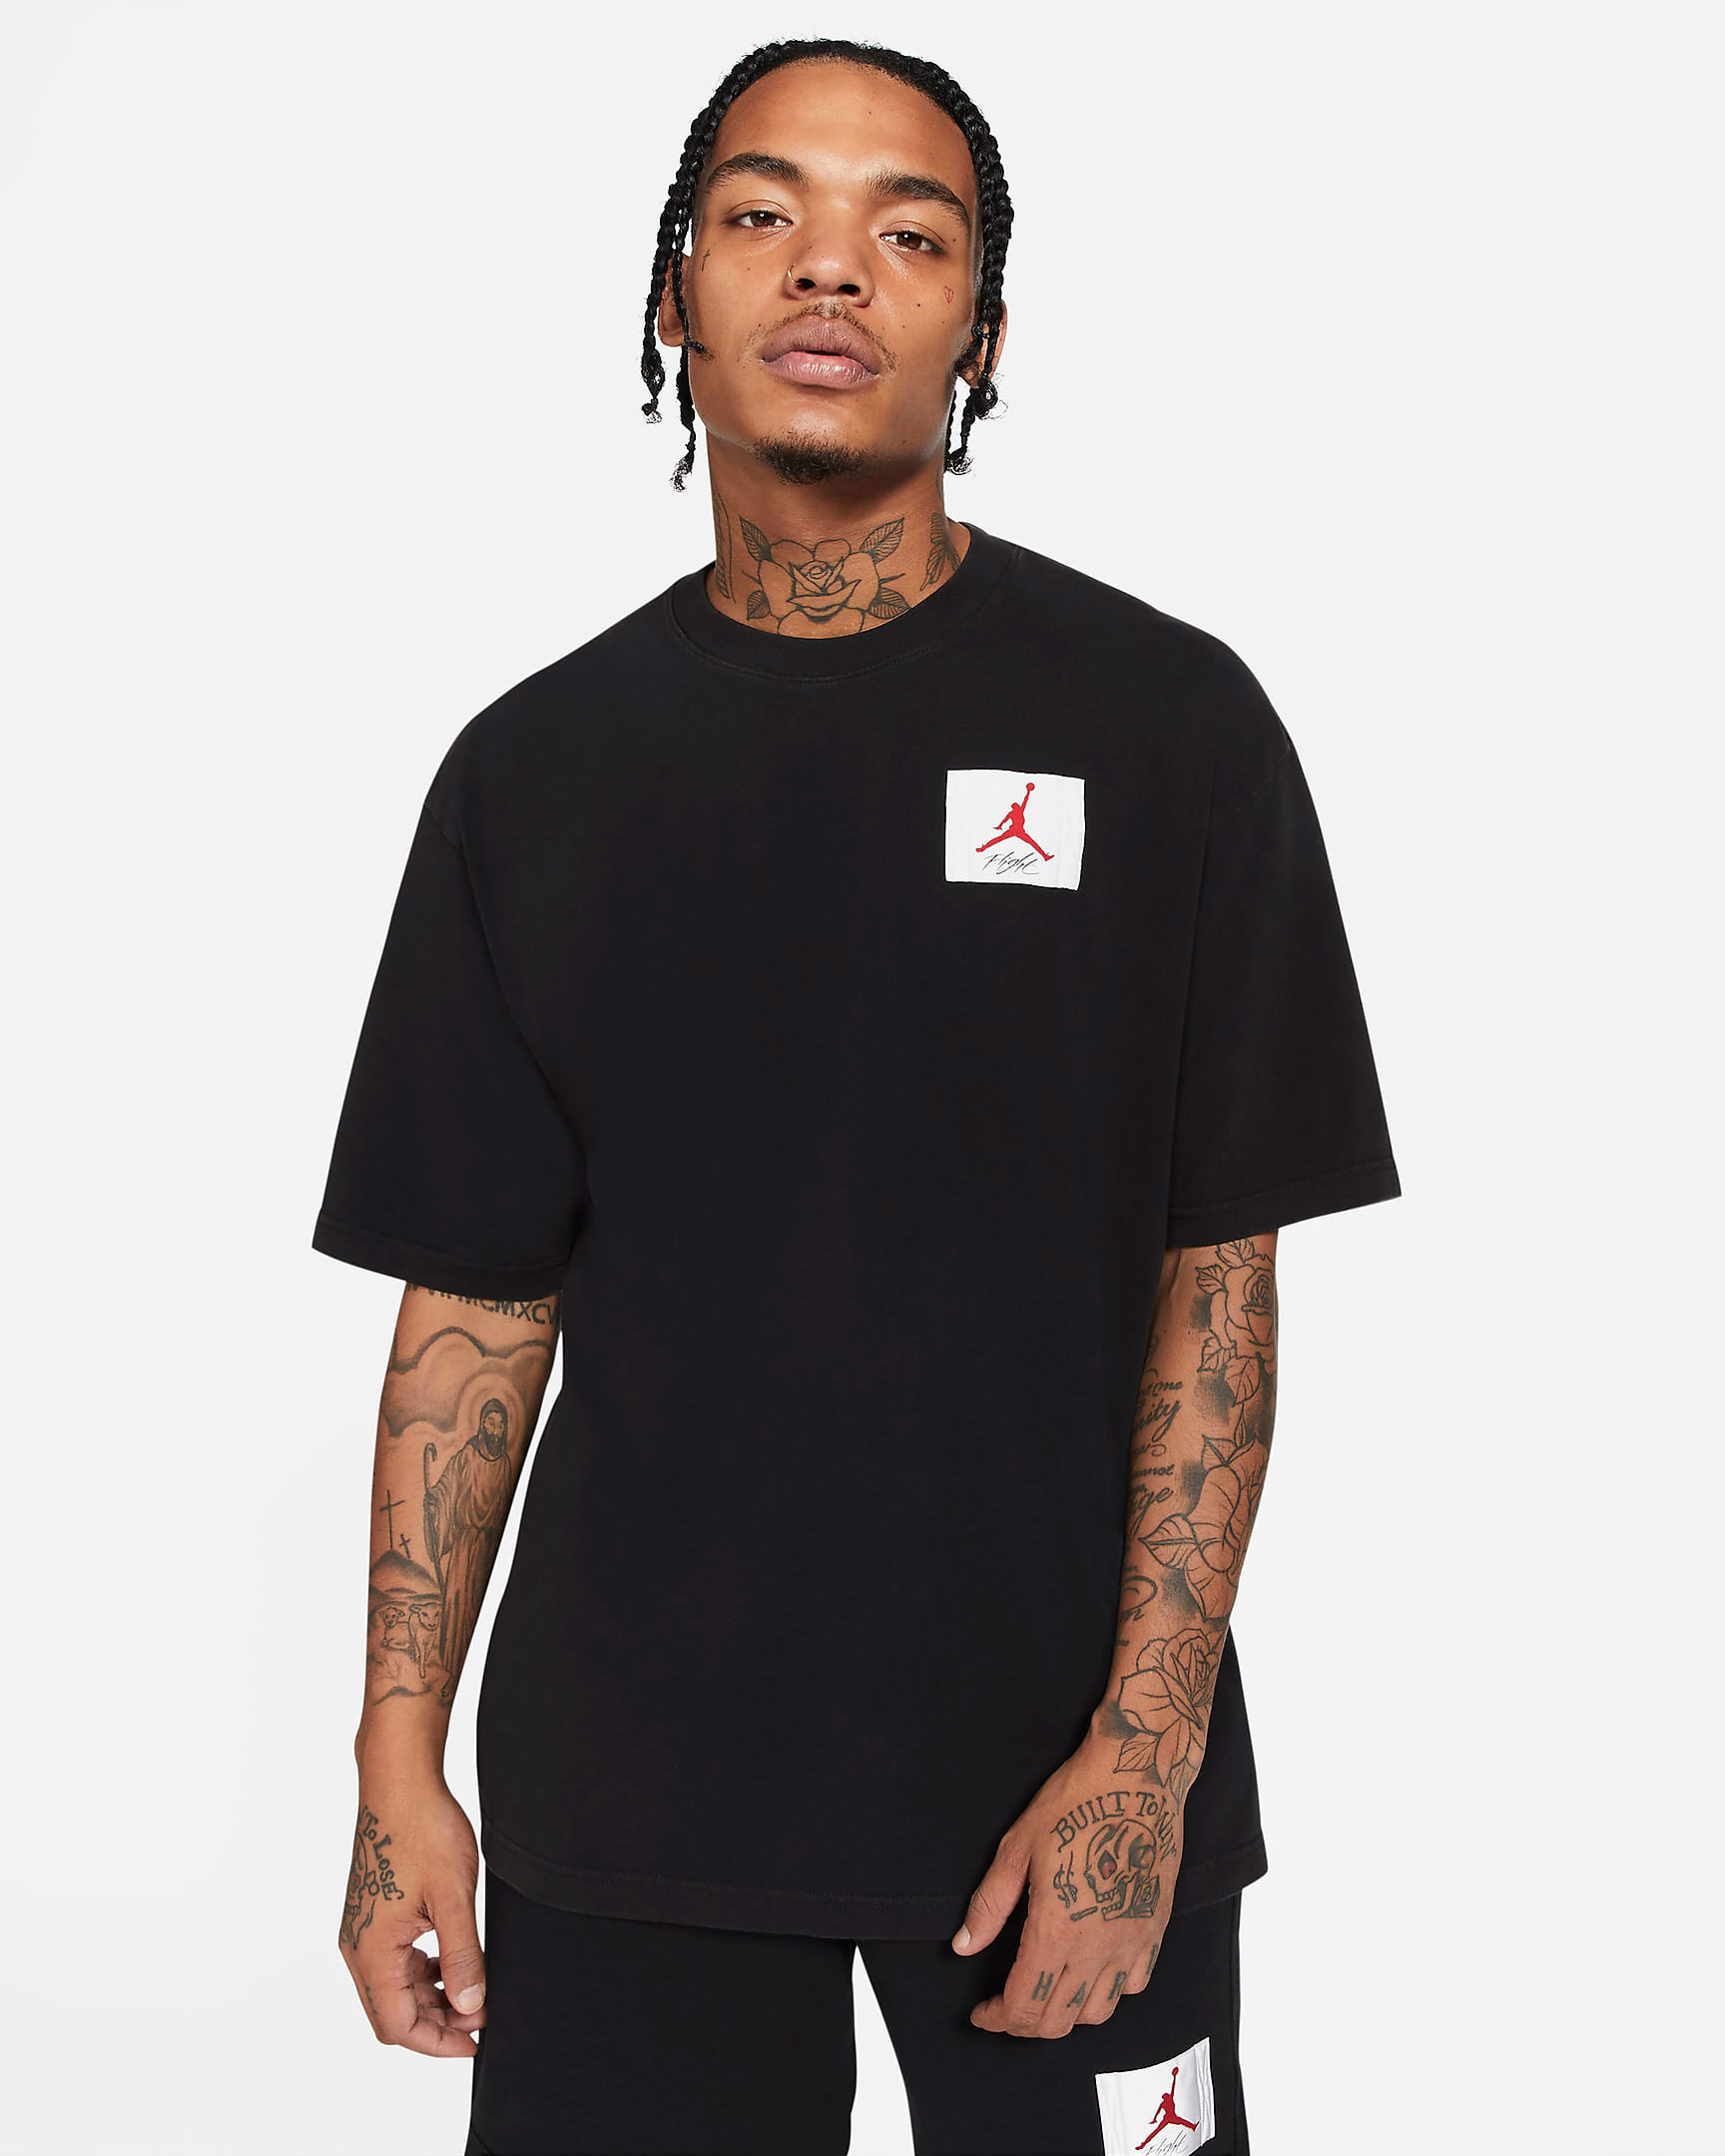 jordan-flight-shirt-black-1